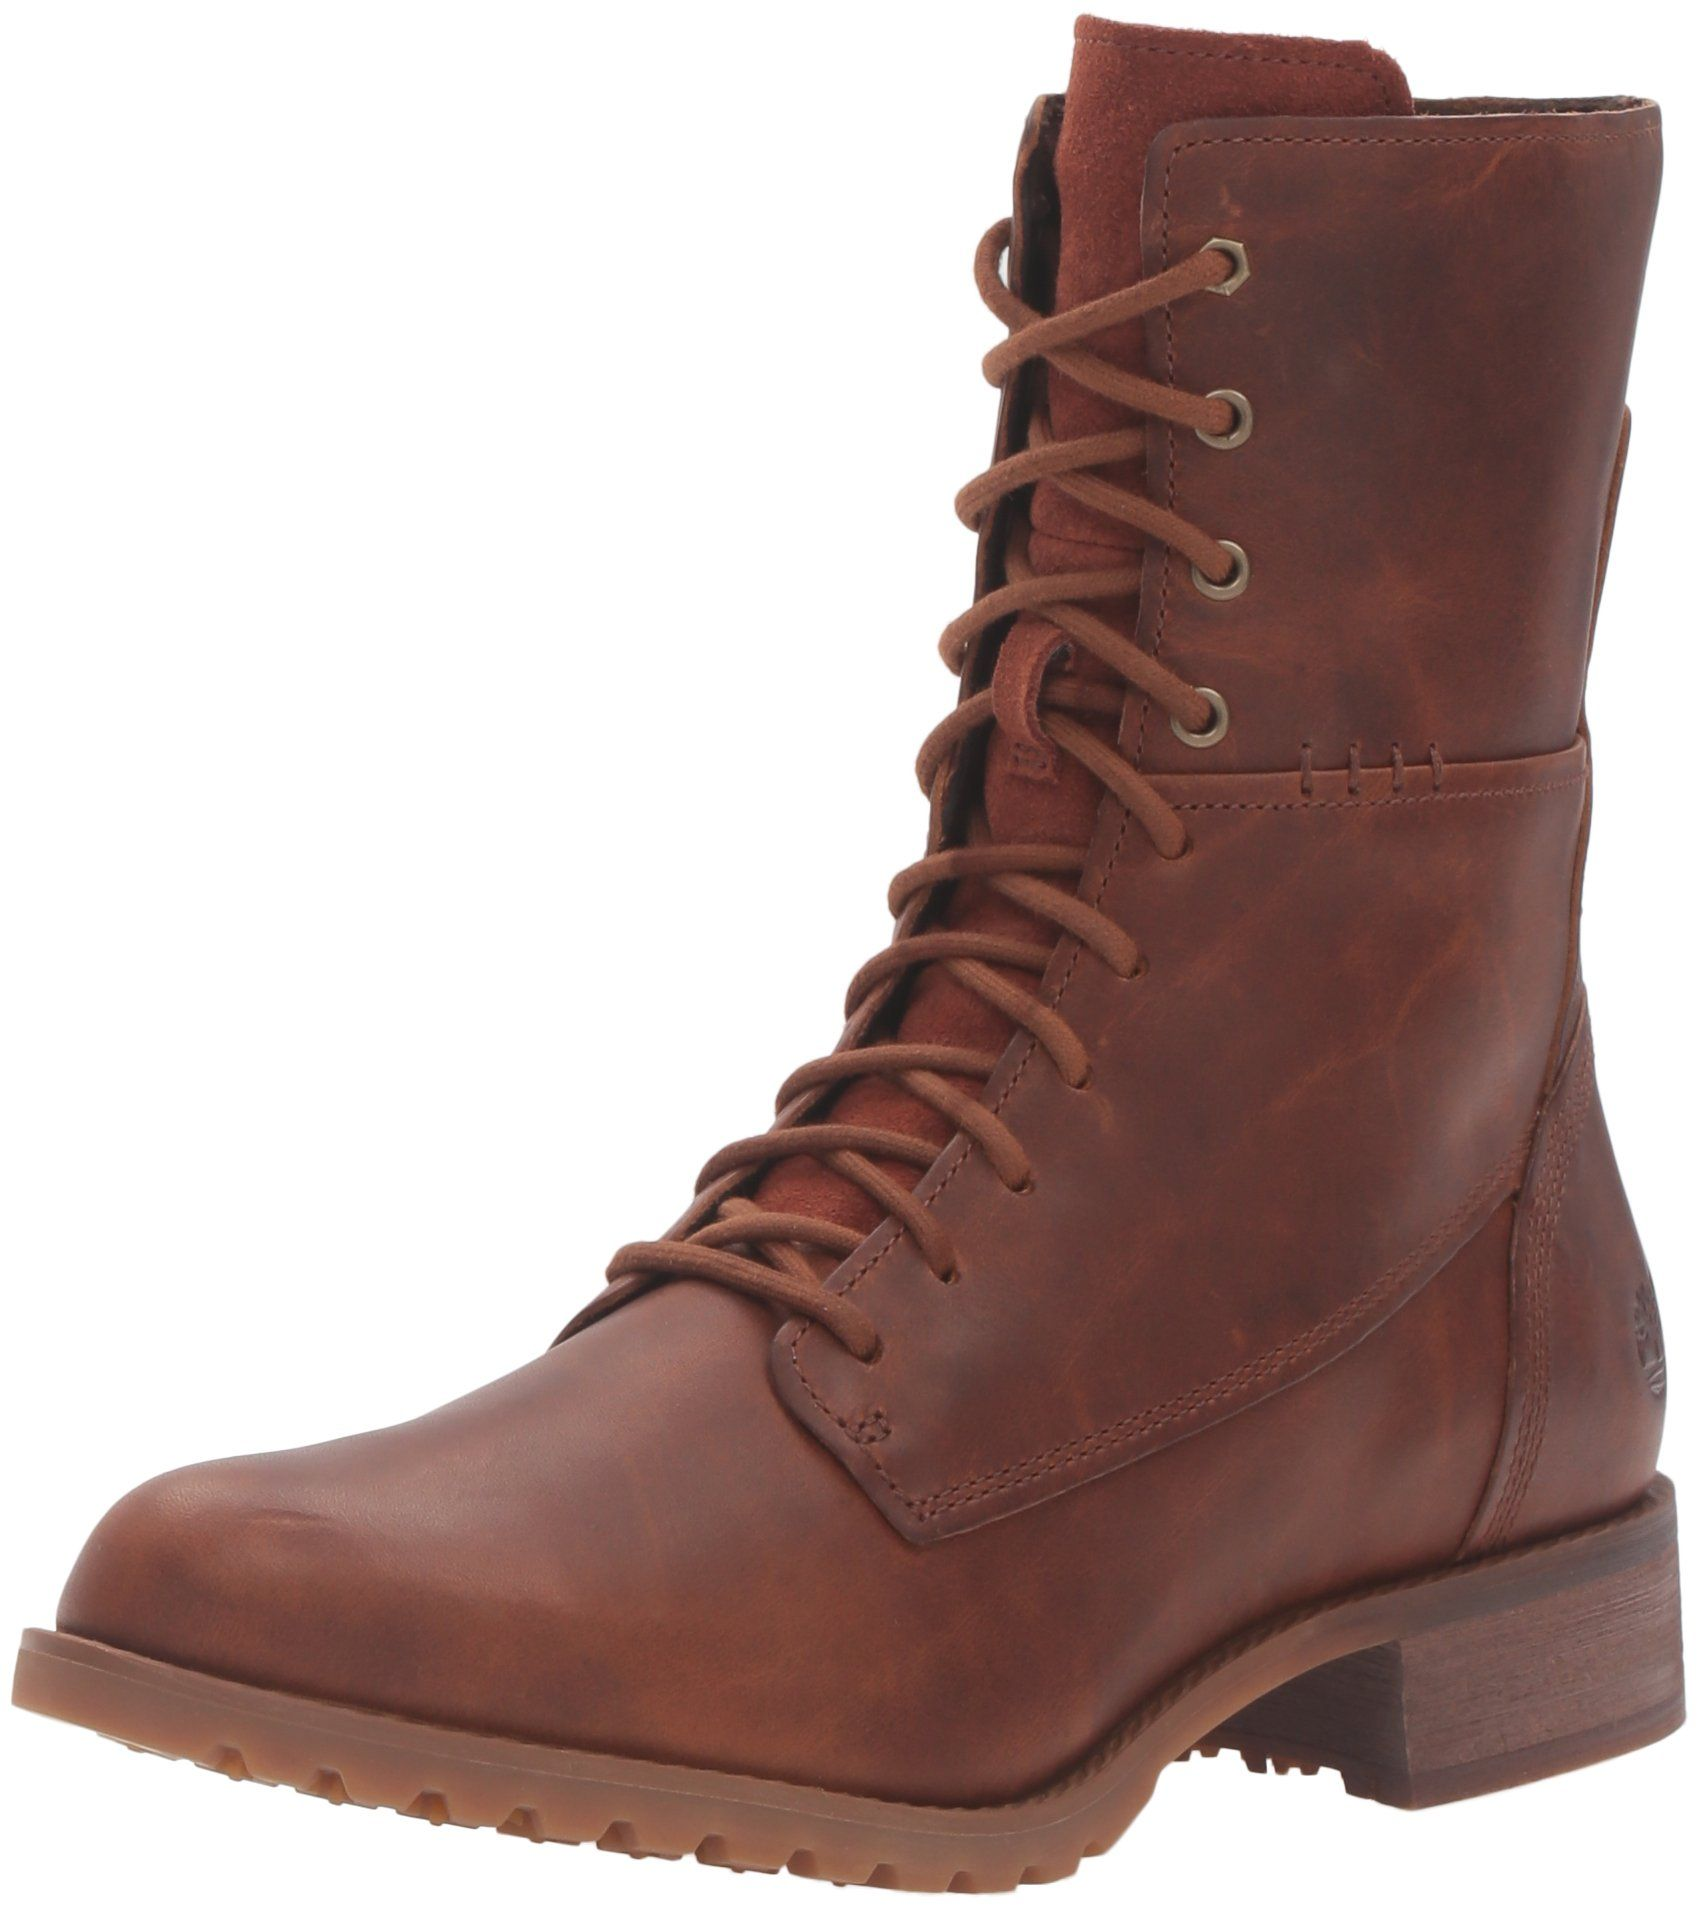 77 Best Timberland Women Shoes images | Timberlands women